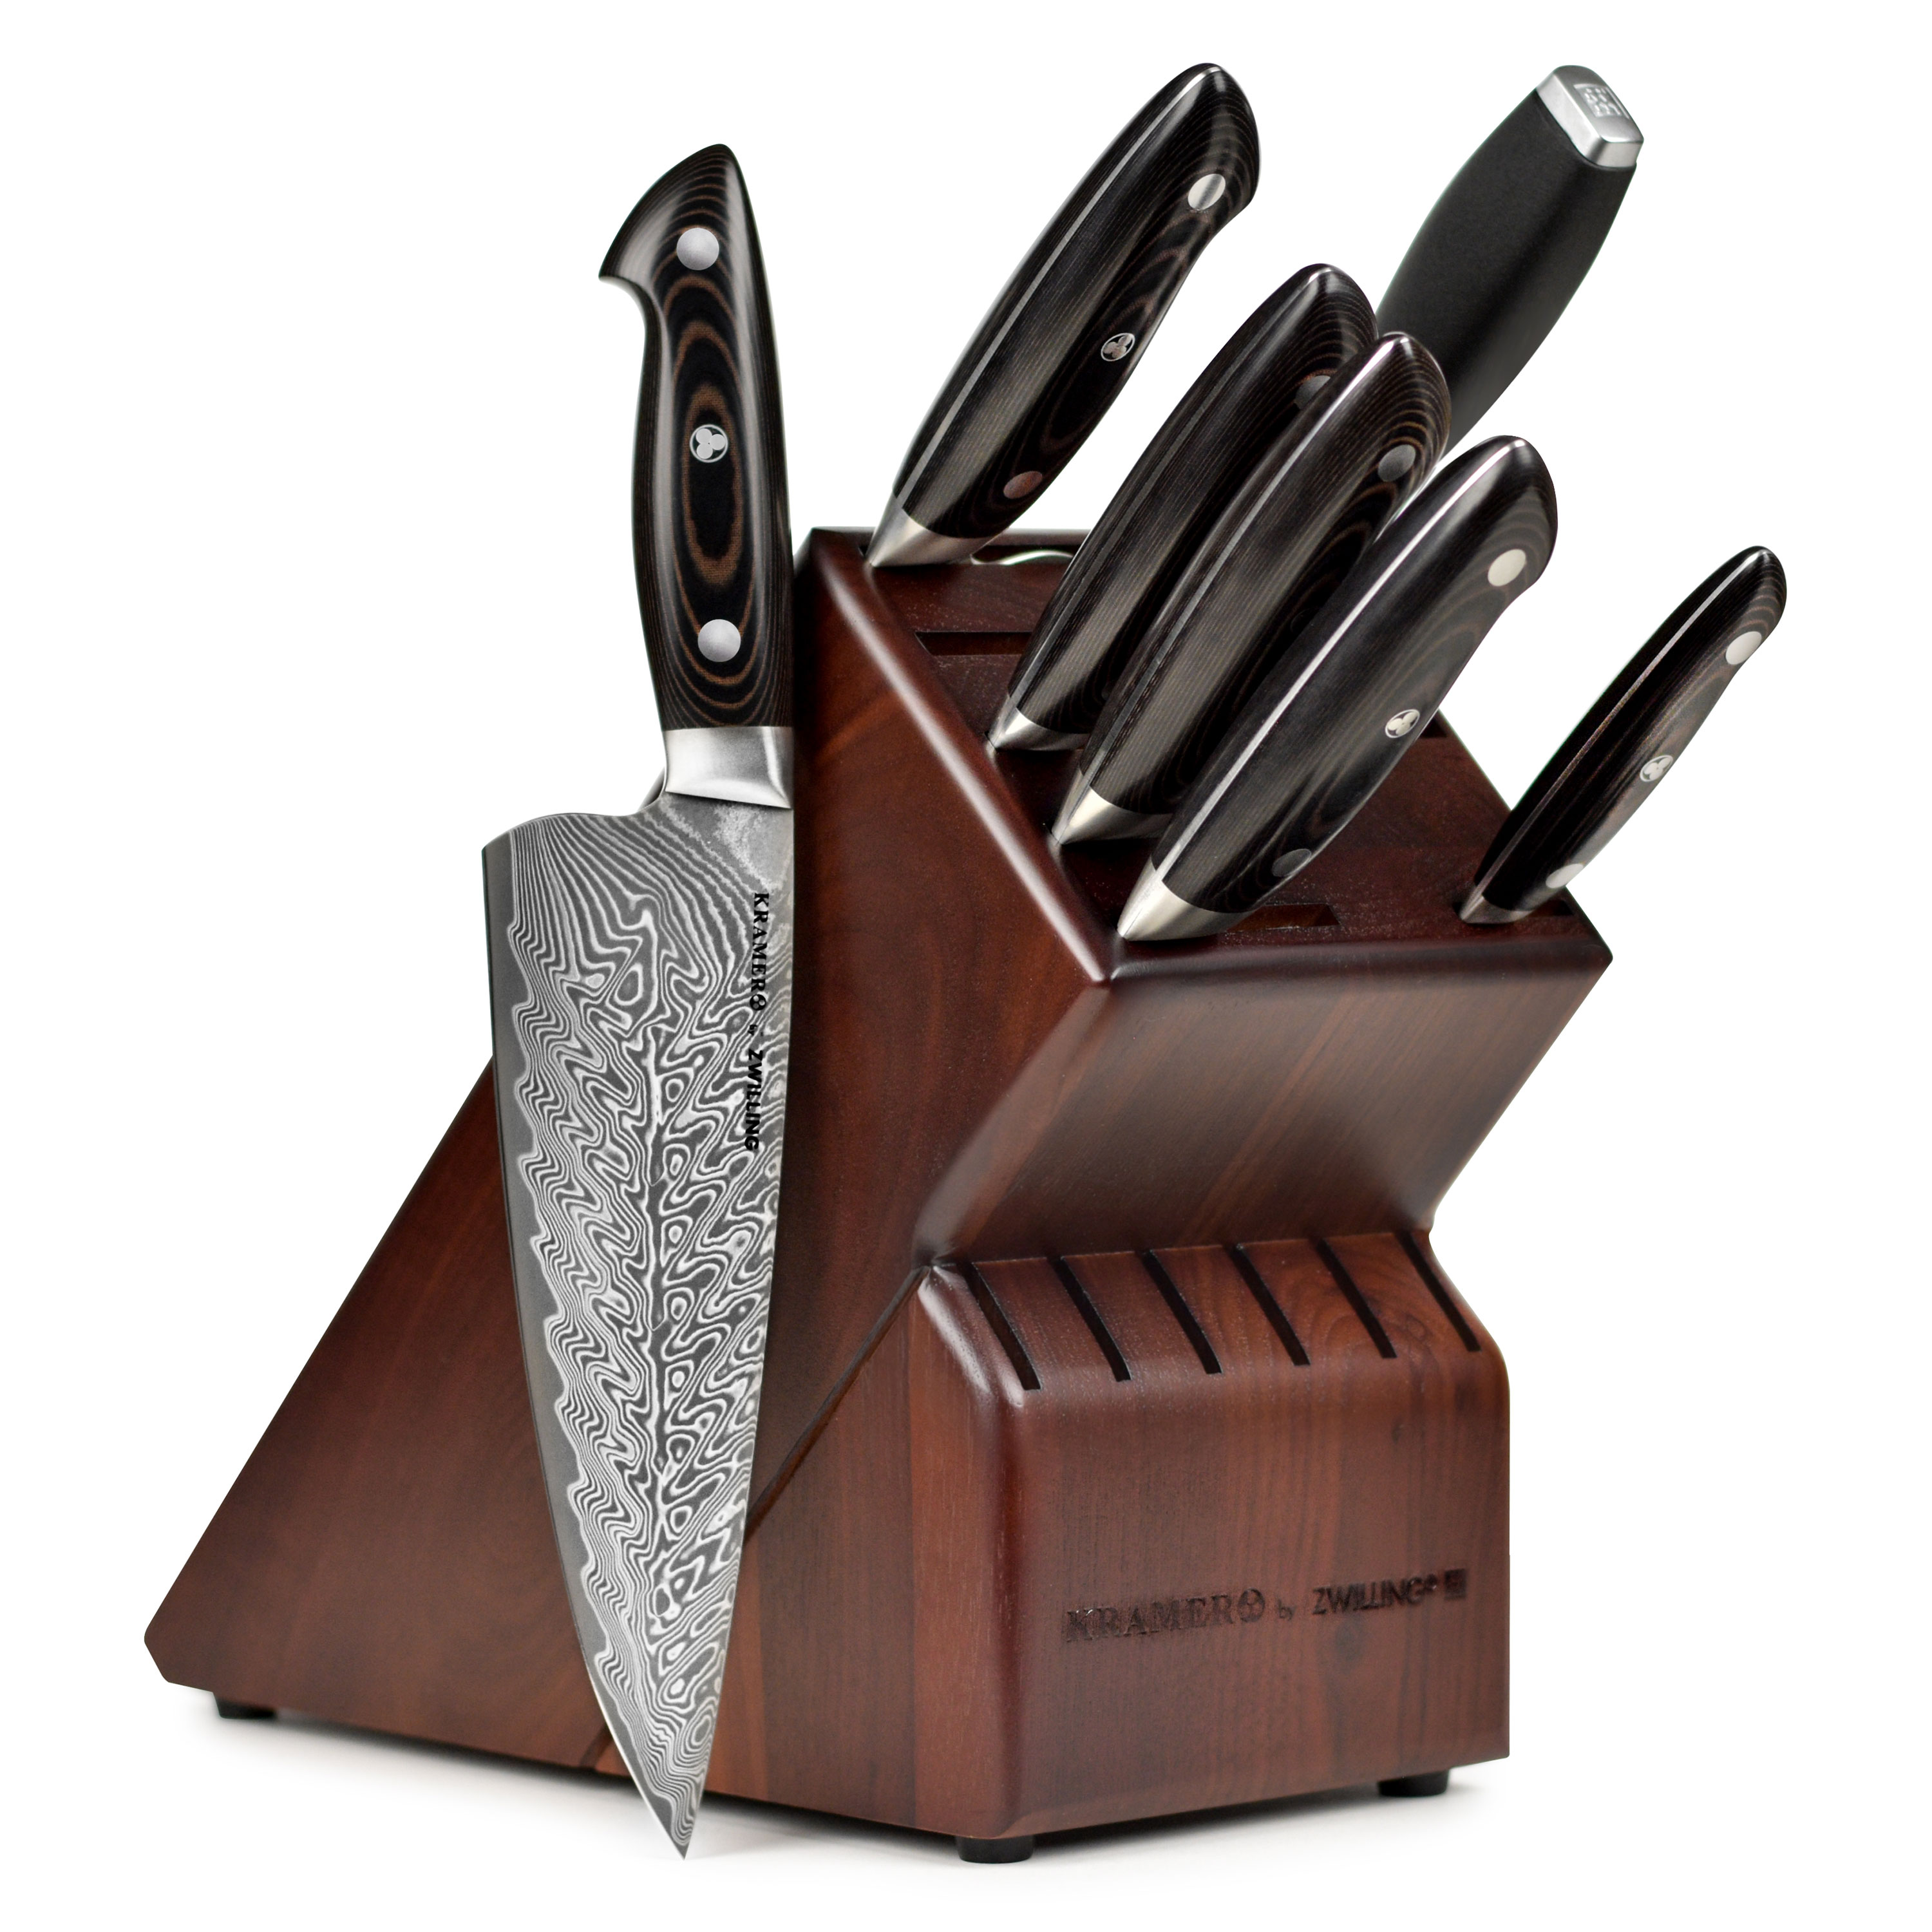 Raclette Tischgrill Zwilling J.a.henckels Bob Kramer Damascus Knife Set 8 Piece With Block By